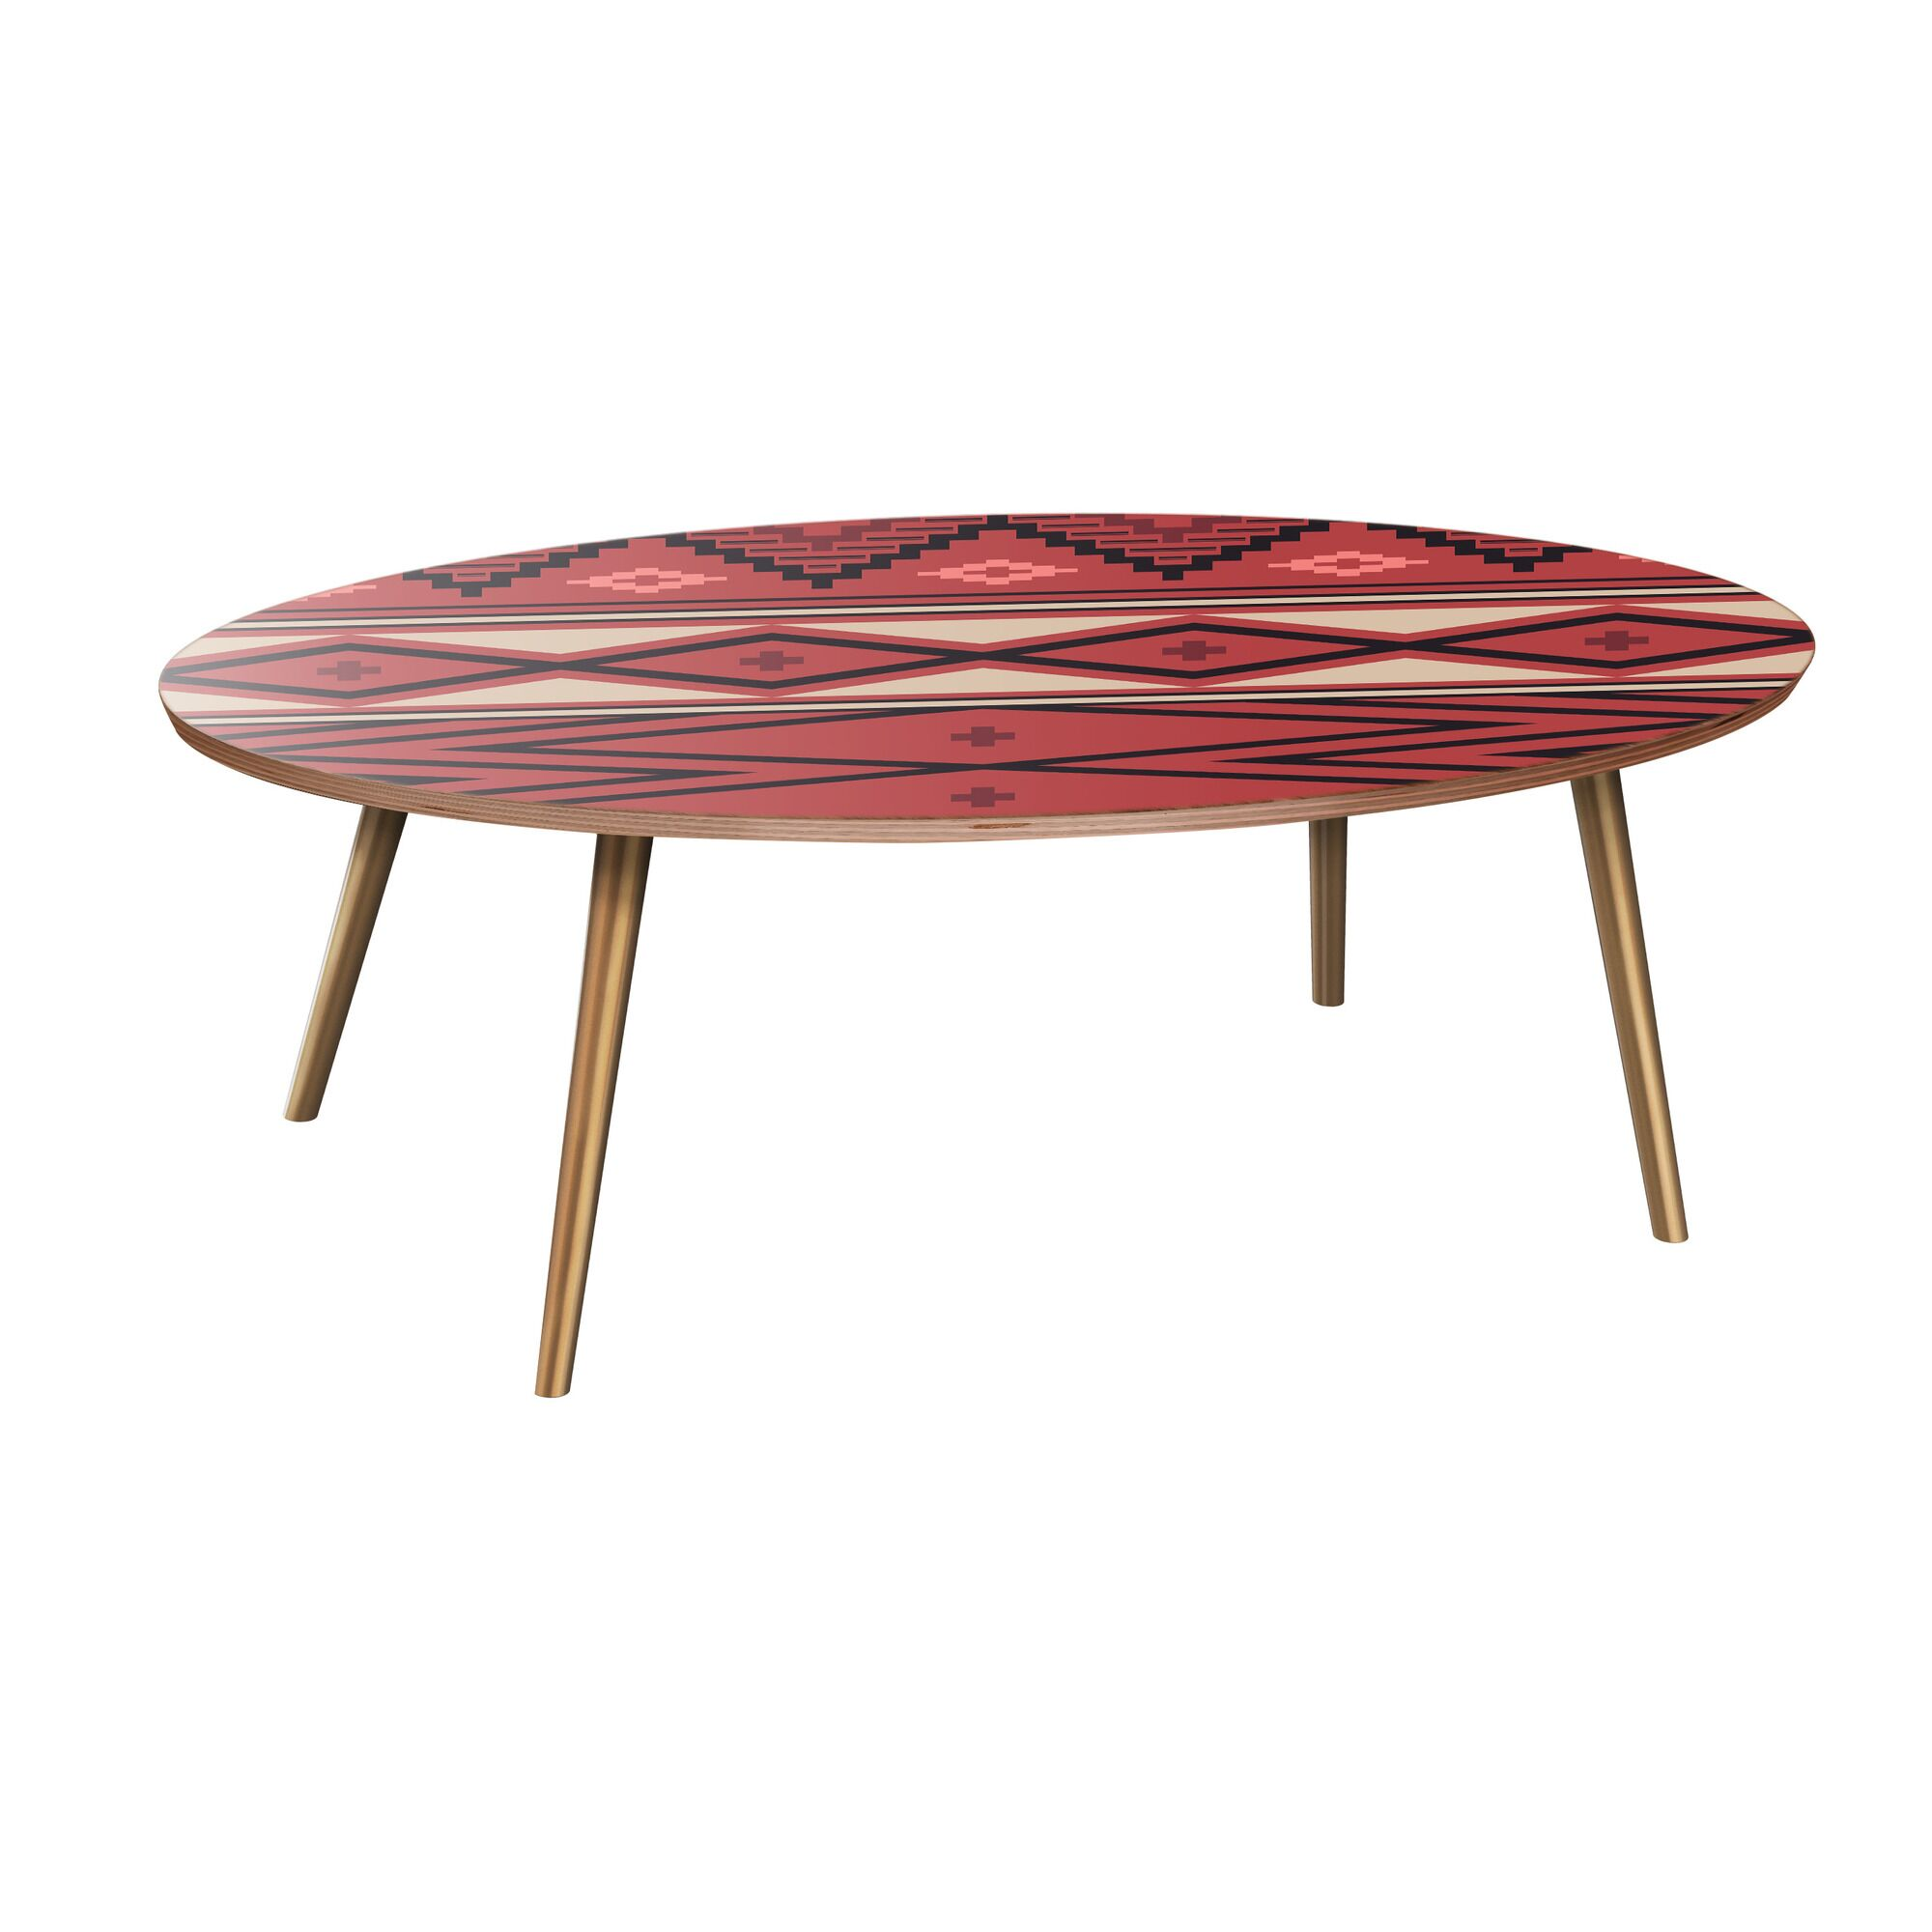 Huckins Coffee Table Table Base Color: Brass, Table Top Boarder Color: Walnut, Table Top Color: Pink/Blue